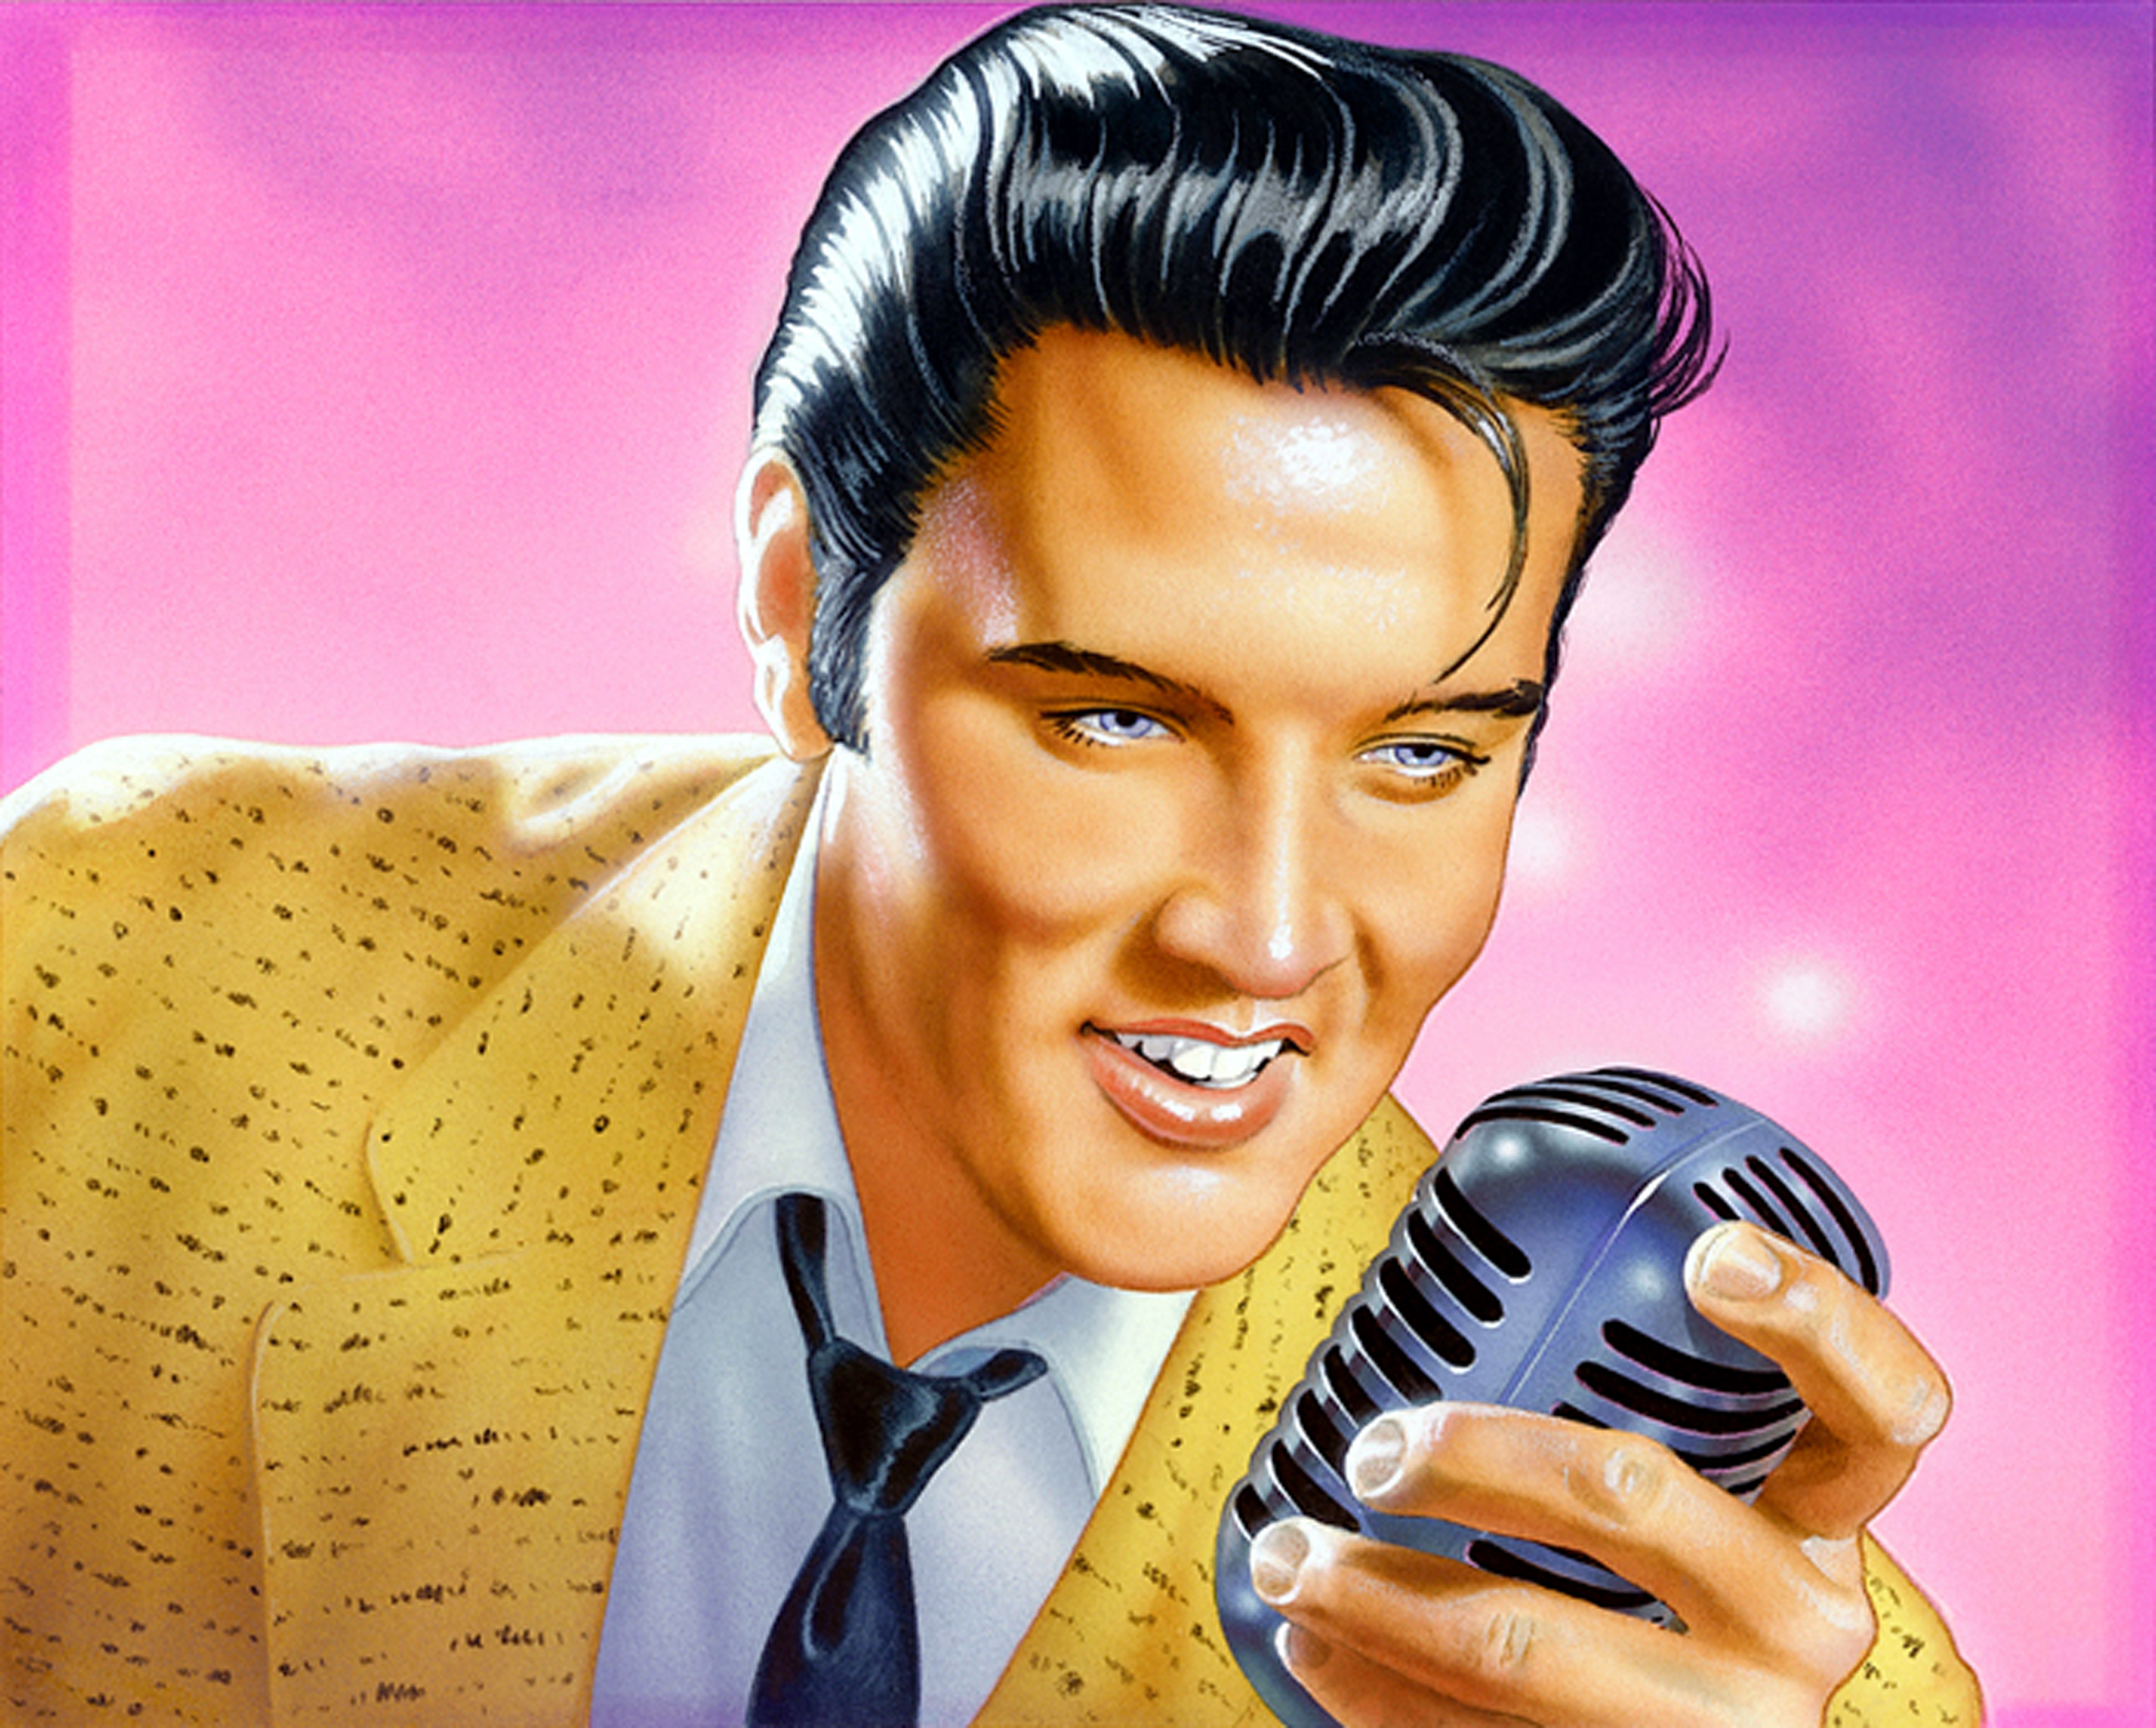 elvis cultural impact on americans essay Elvis - his life and impact of his music dissertation, term paper or essay which were created by the pop-culture that began with elvis.